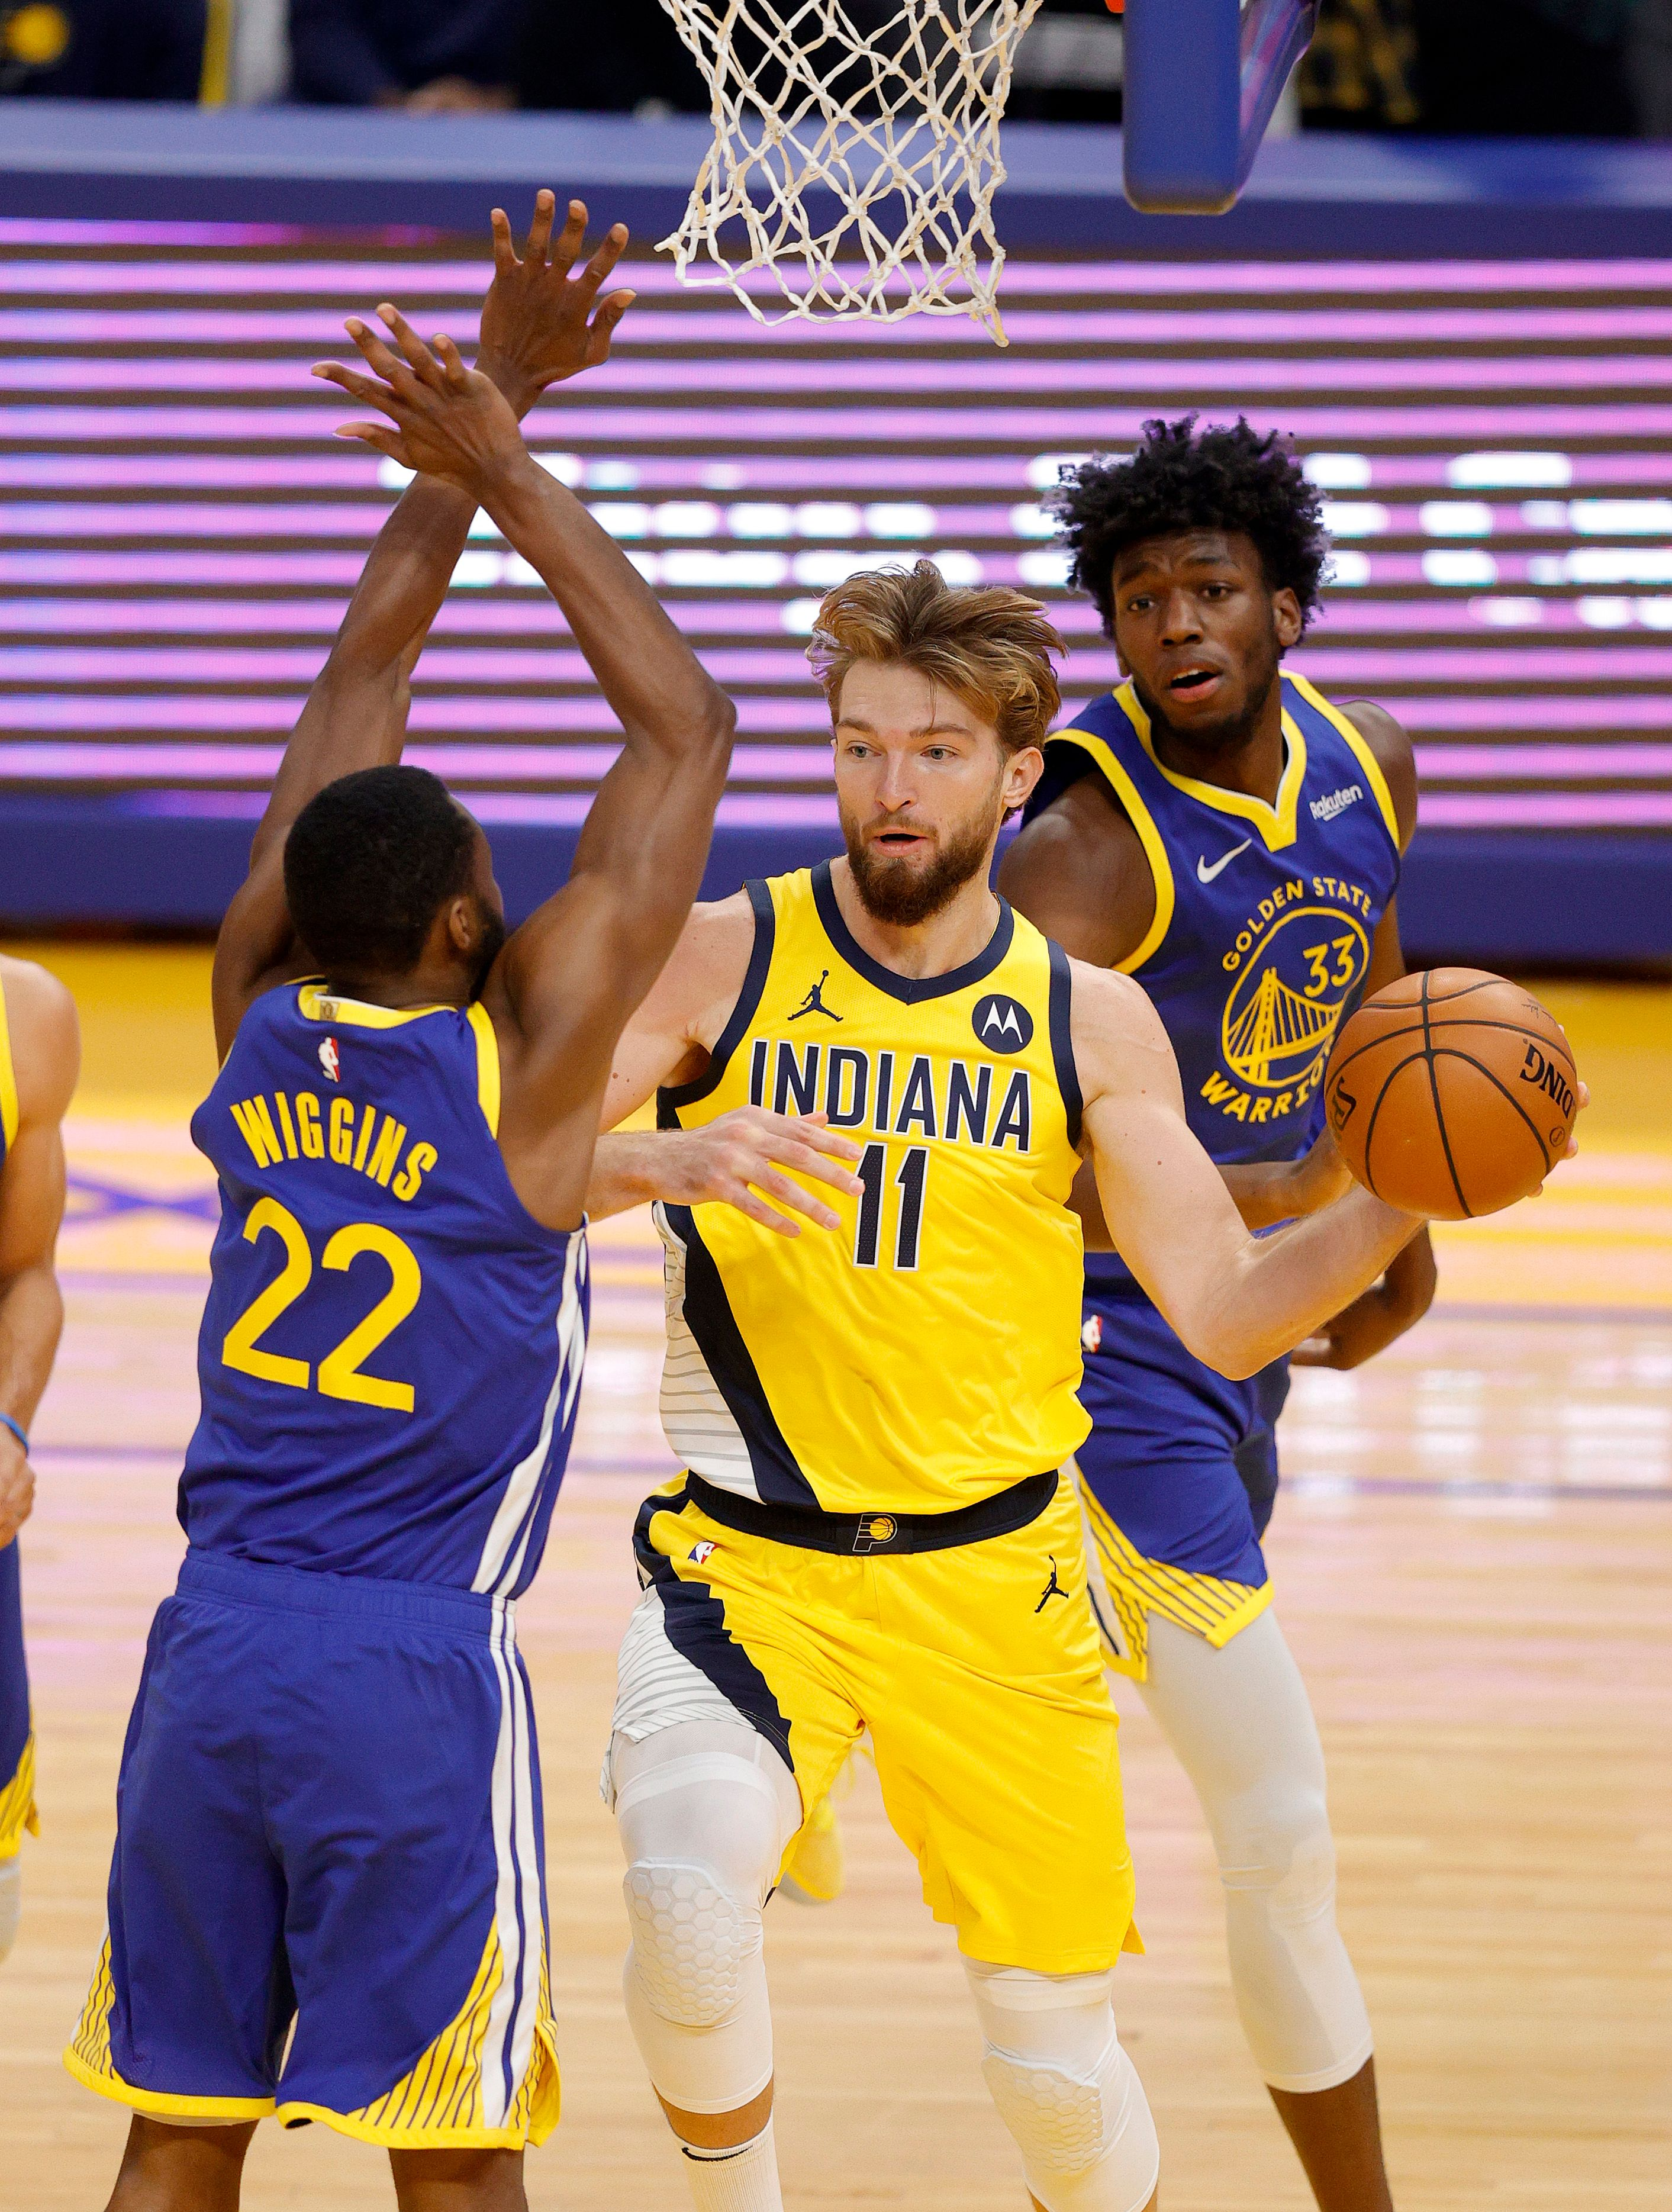 James Wiseman and Andrew Wiggins trying to steal the ball from Domantas Sabonis